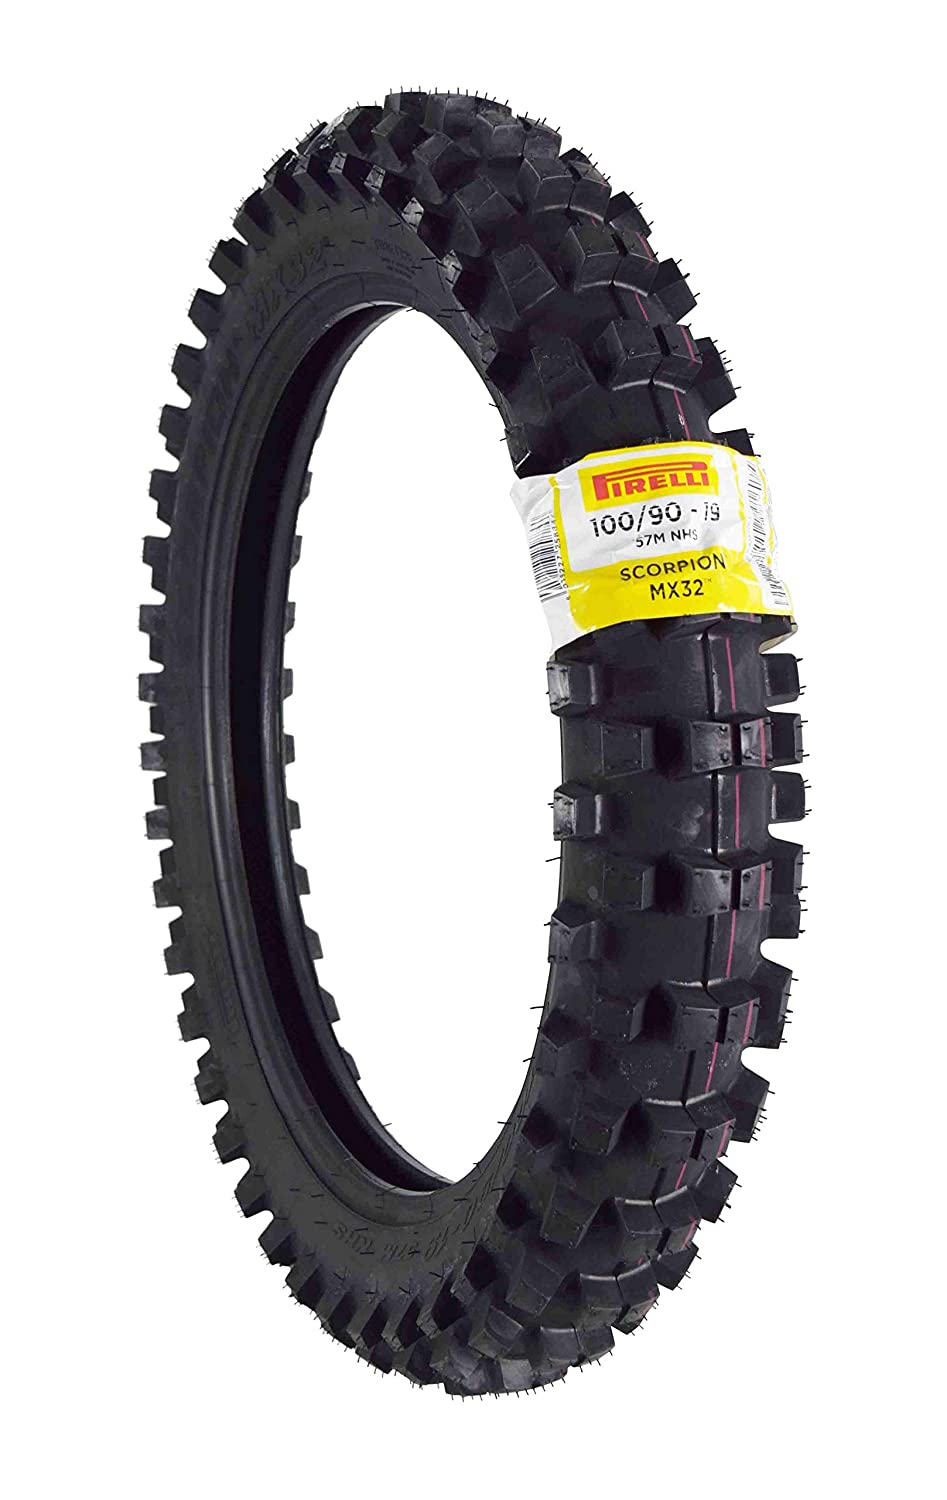 70//100-17 F 90//100-16 R with Tubes Pirelli Scorpion MX32 Mid Soft Dirt Bike Front and Rear Motocross Tires Set with Inner Tubes and Authentic Pirelli Key Chain